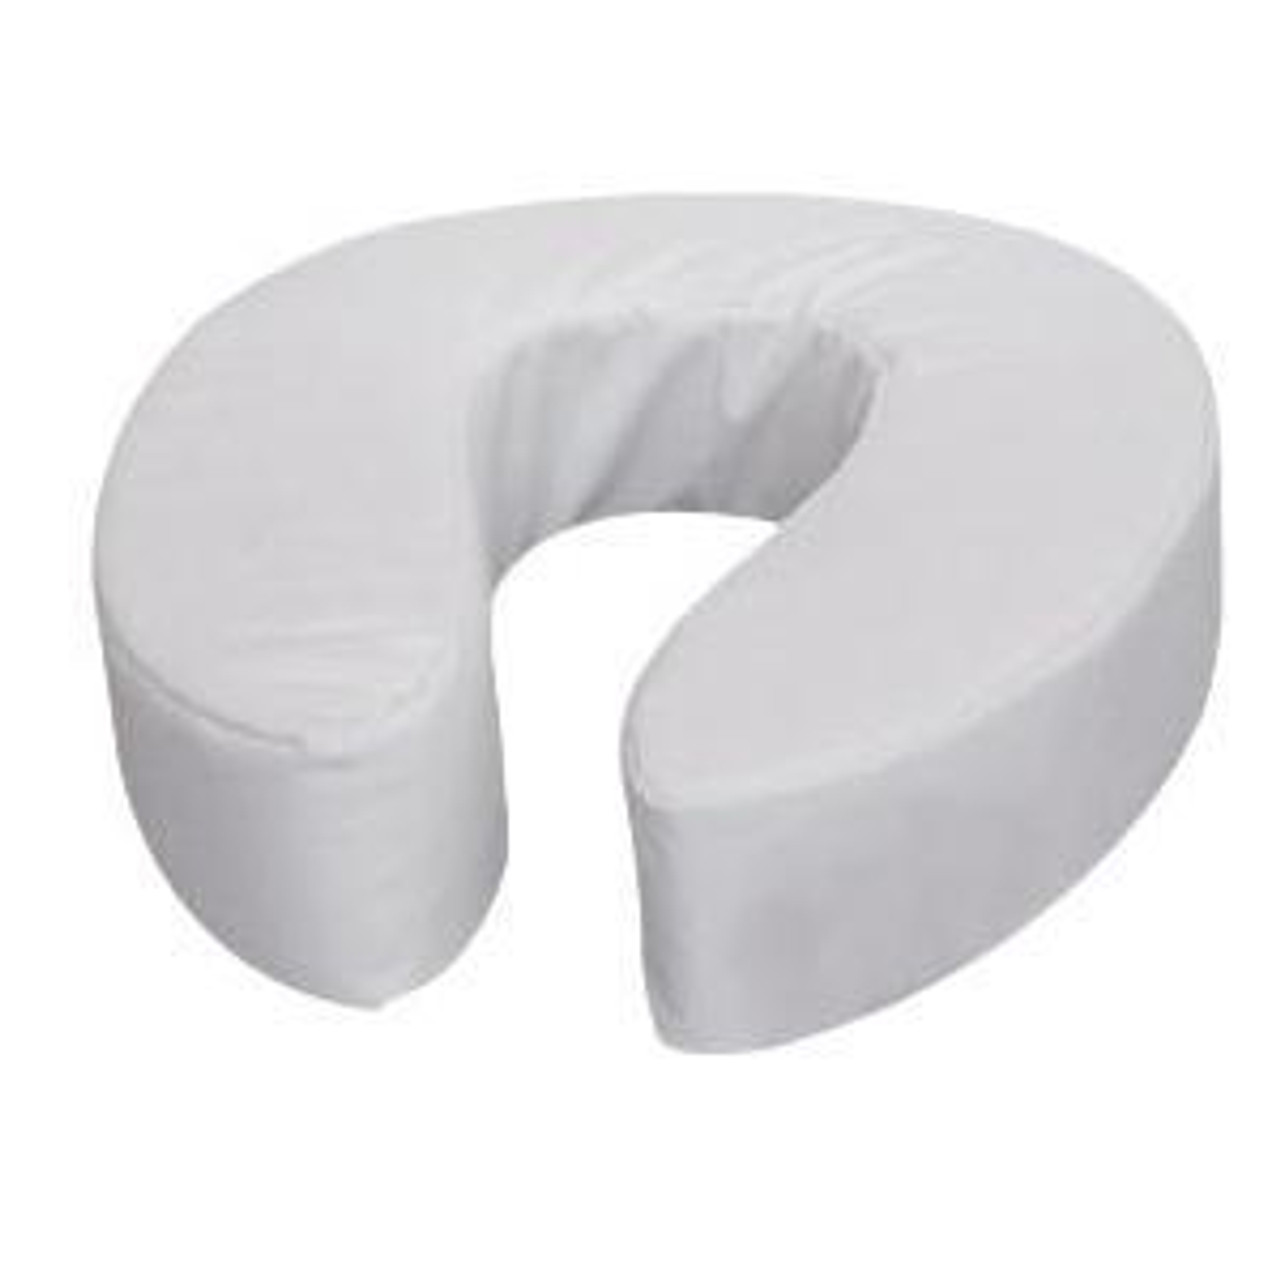 Magnificent Dmi Vinyl Cushion Toilet Seat Riser Gmtry Best Dining Table And Chair Ideas Images Gmtryco